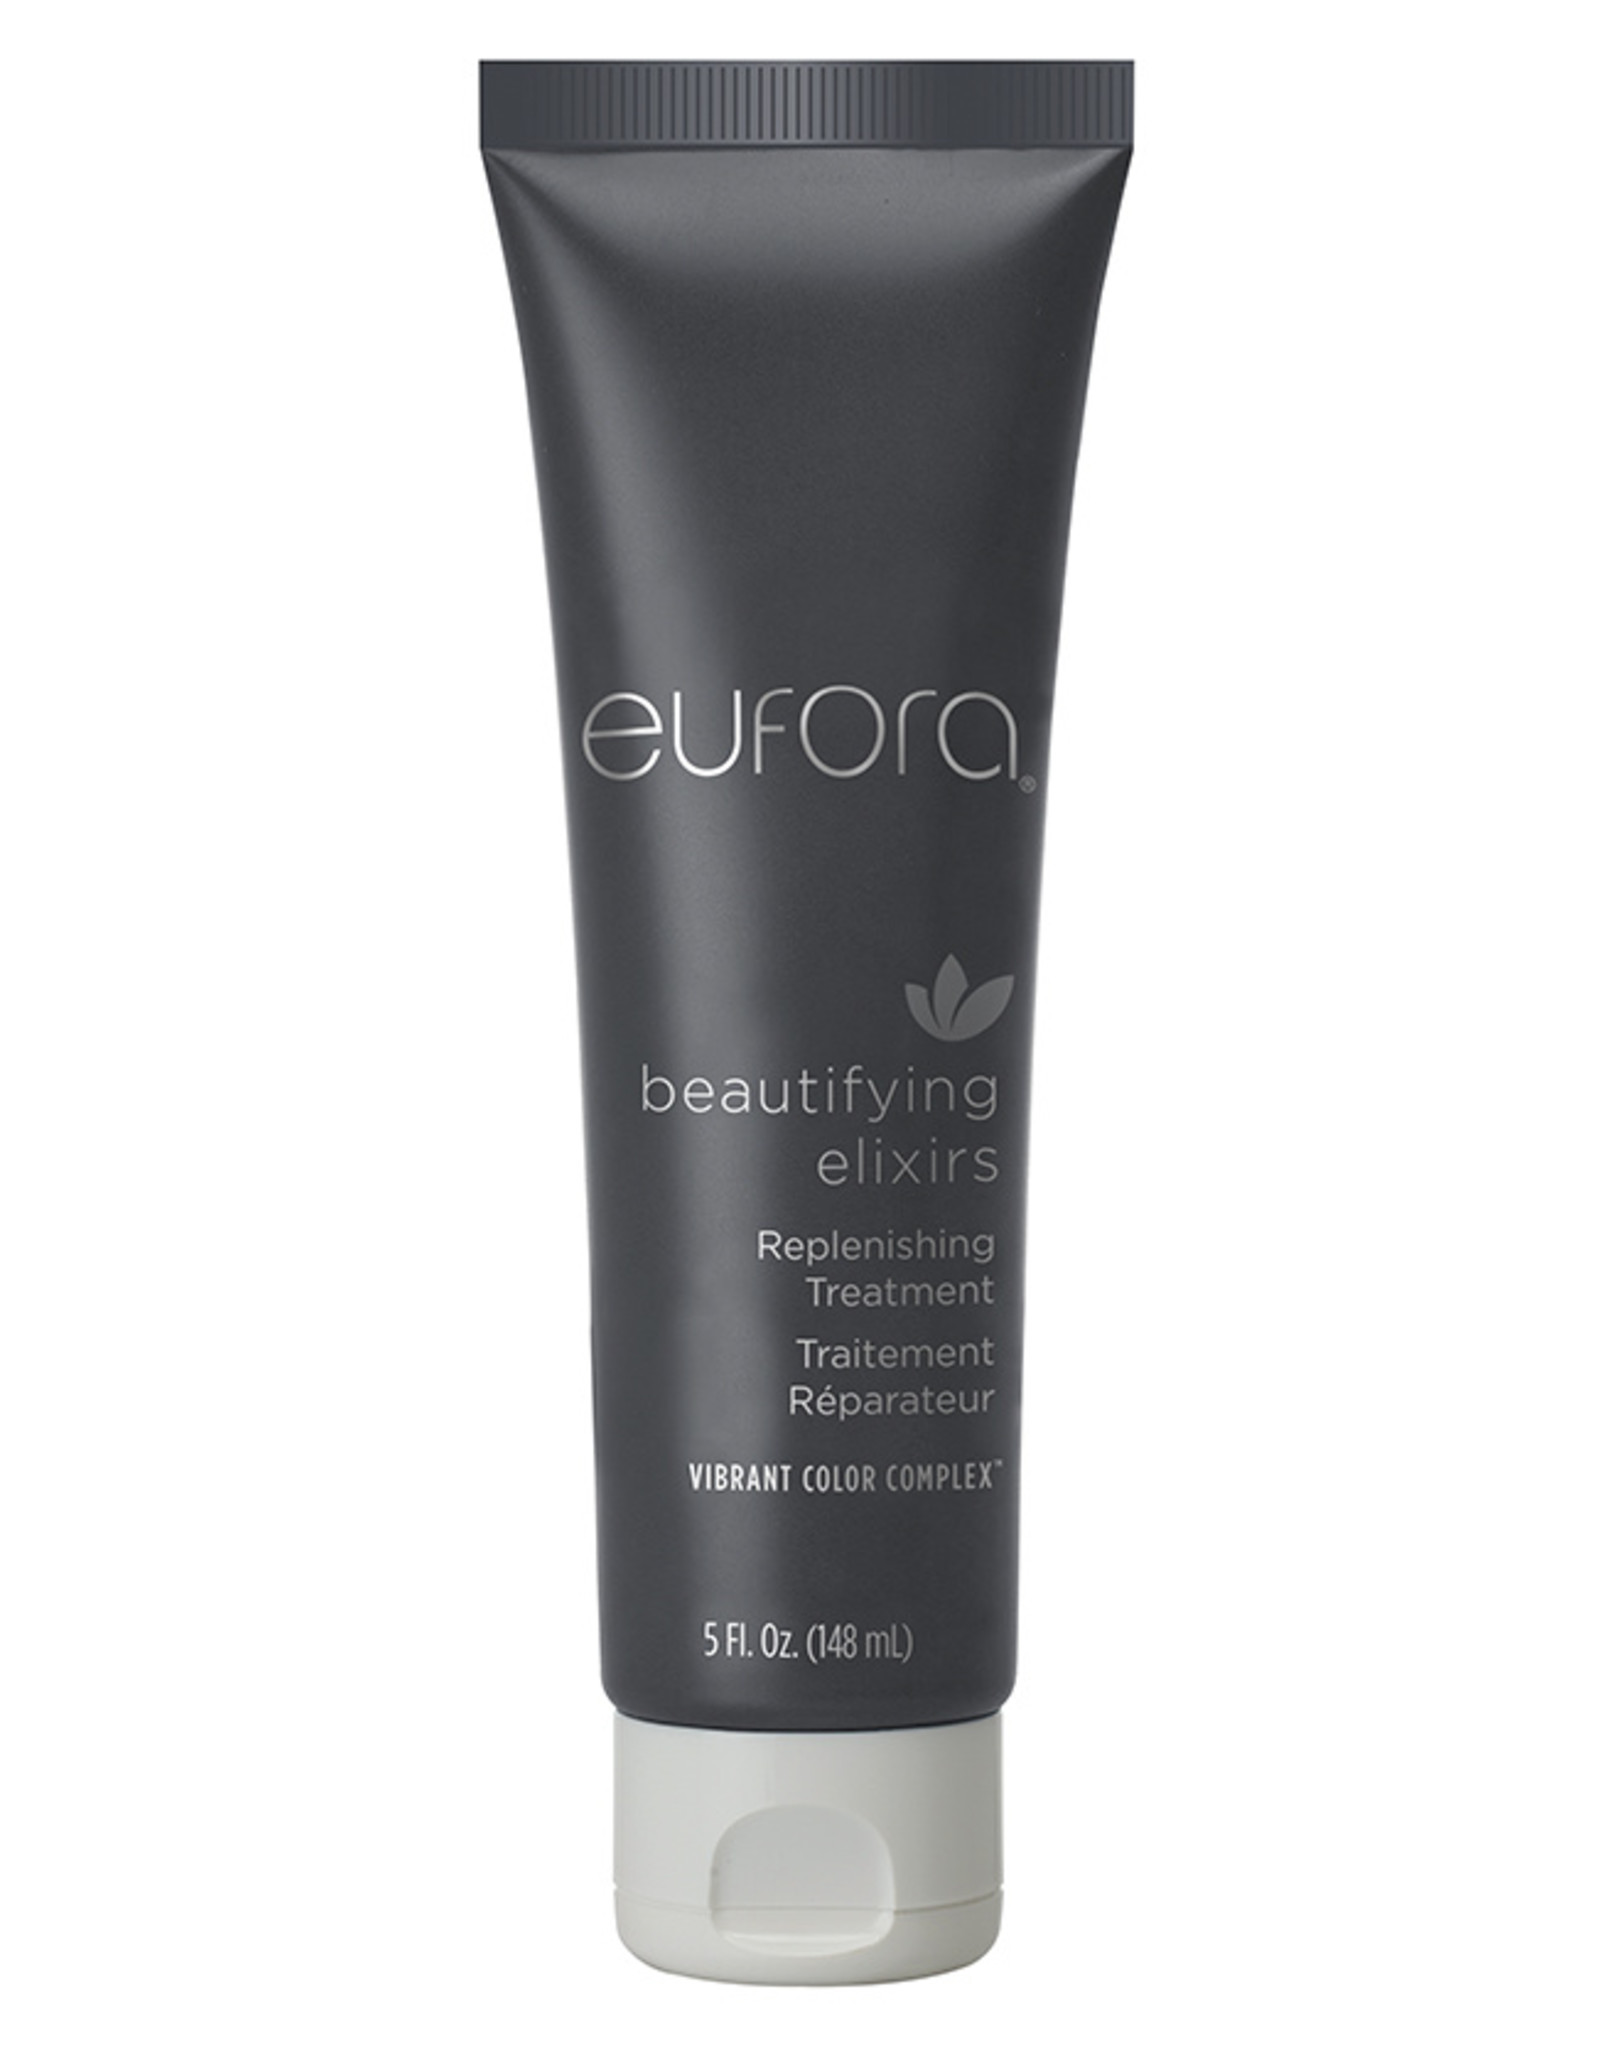 Eufora Replenishing Treatment